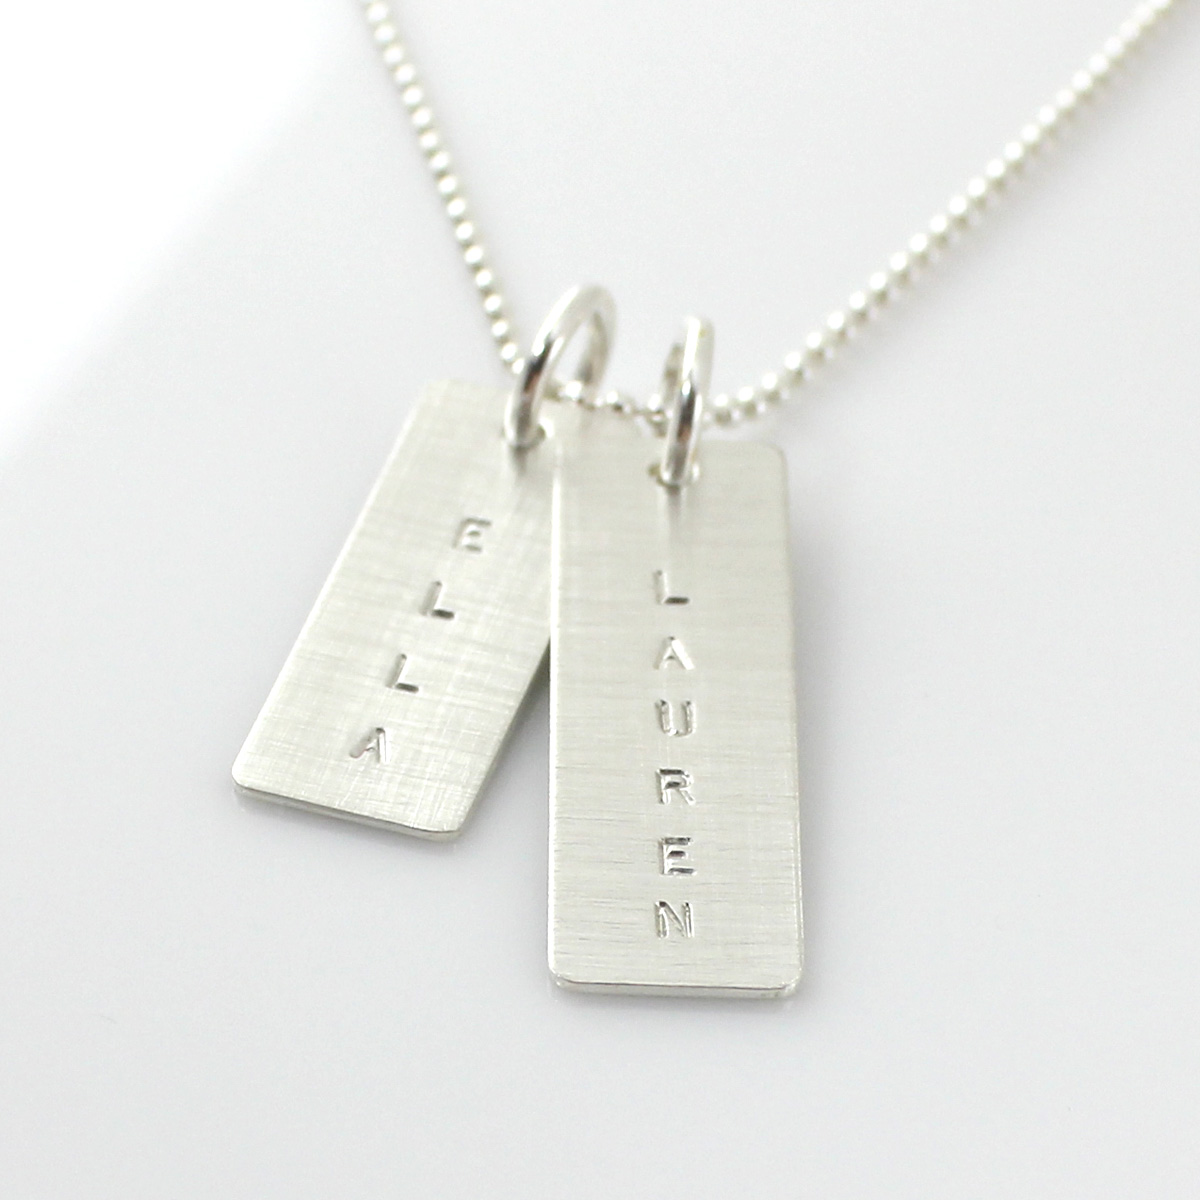 Simple Name Tag Necklace - one long one short